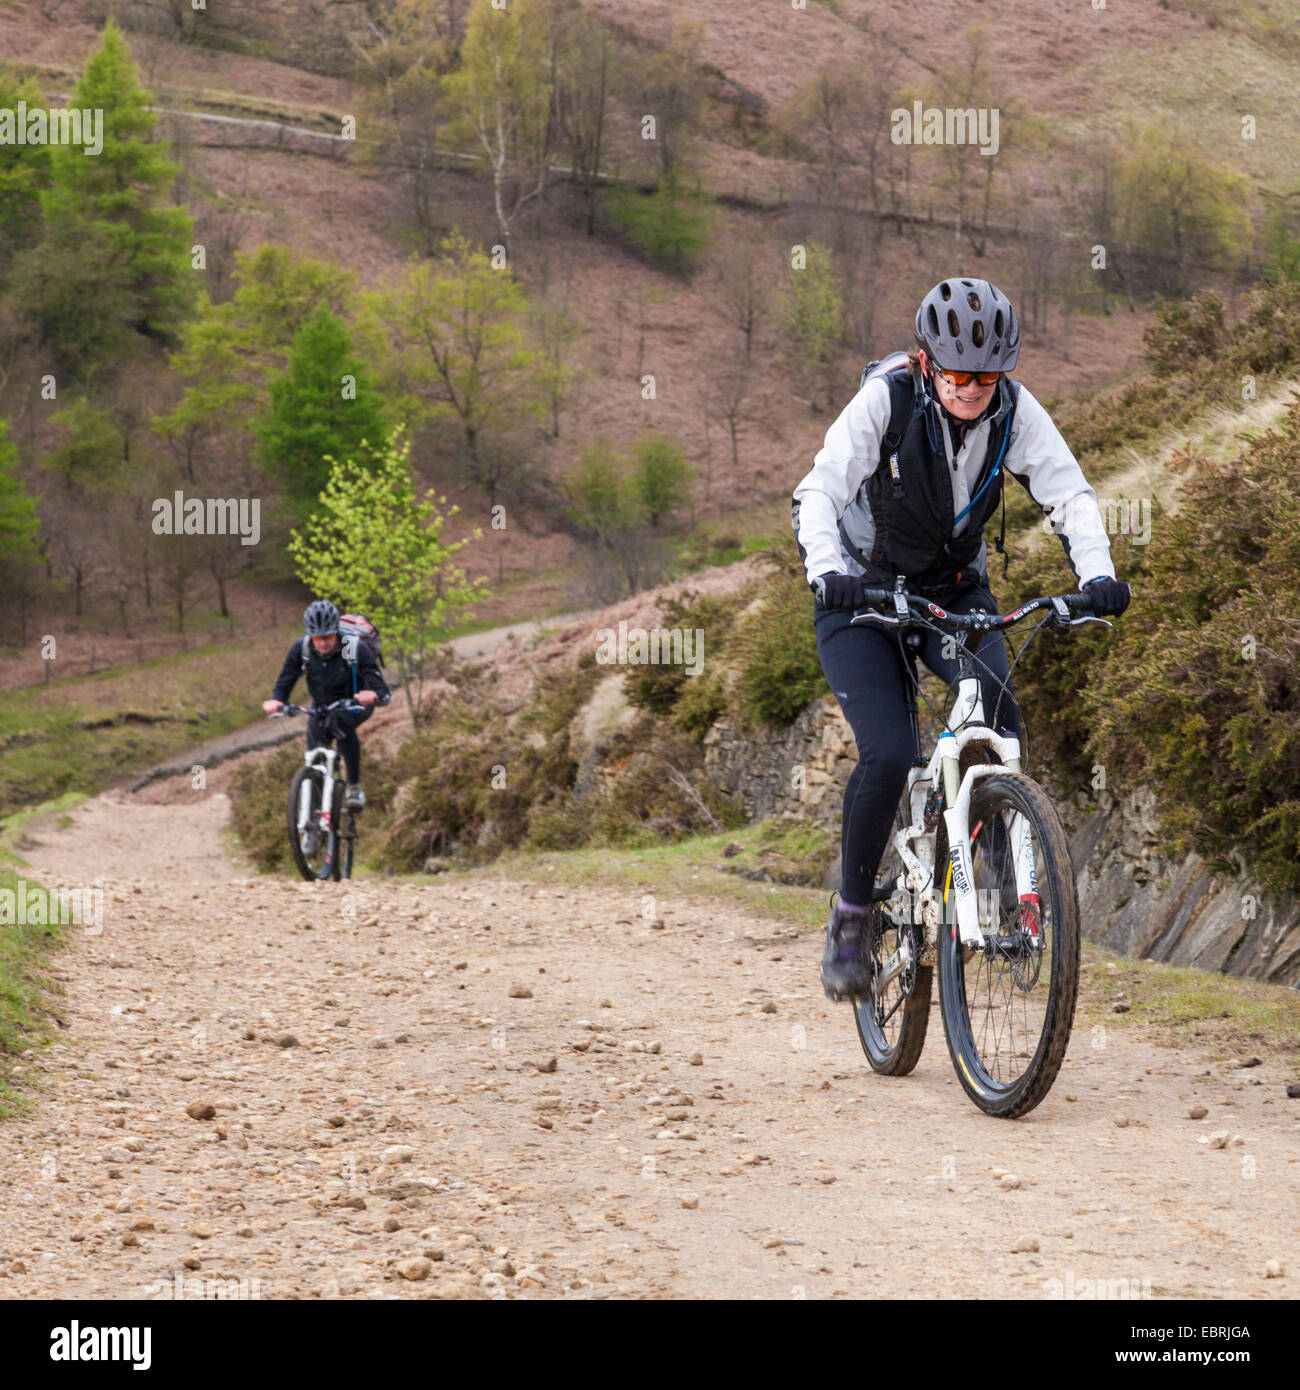 Mountain biking in the UK. Cyclists cycling on an up hill path on the north side of Jaggers Clough, Derbyshire, Stock Photo